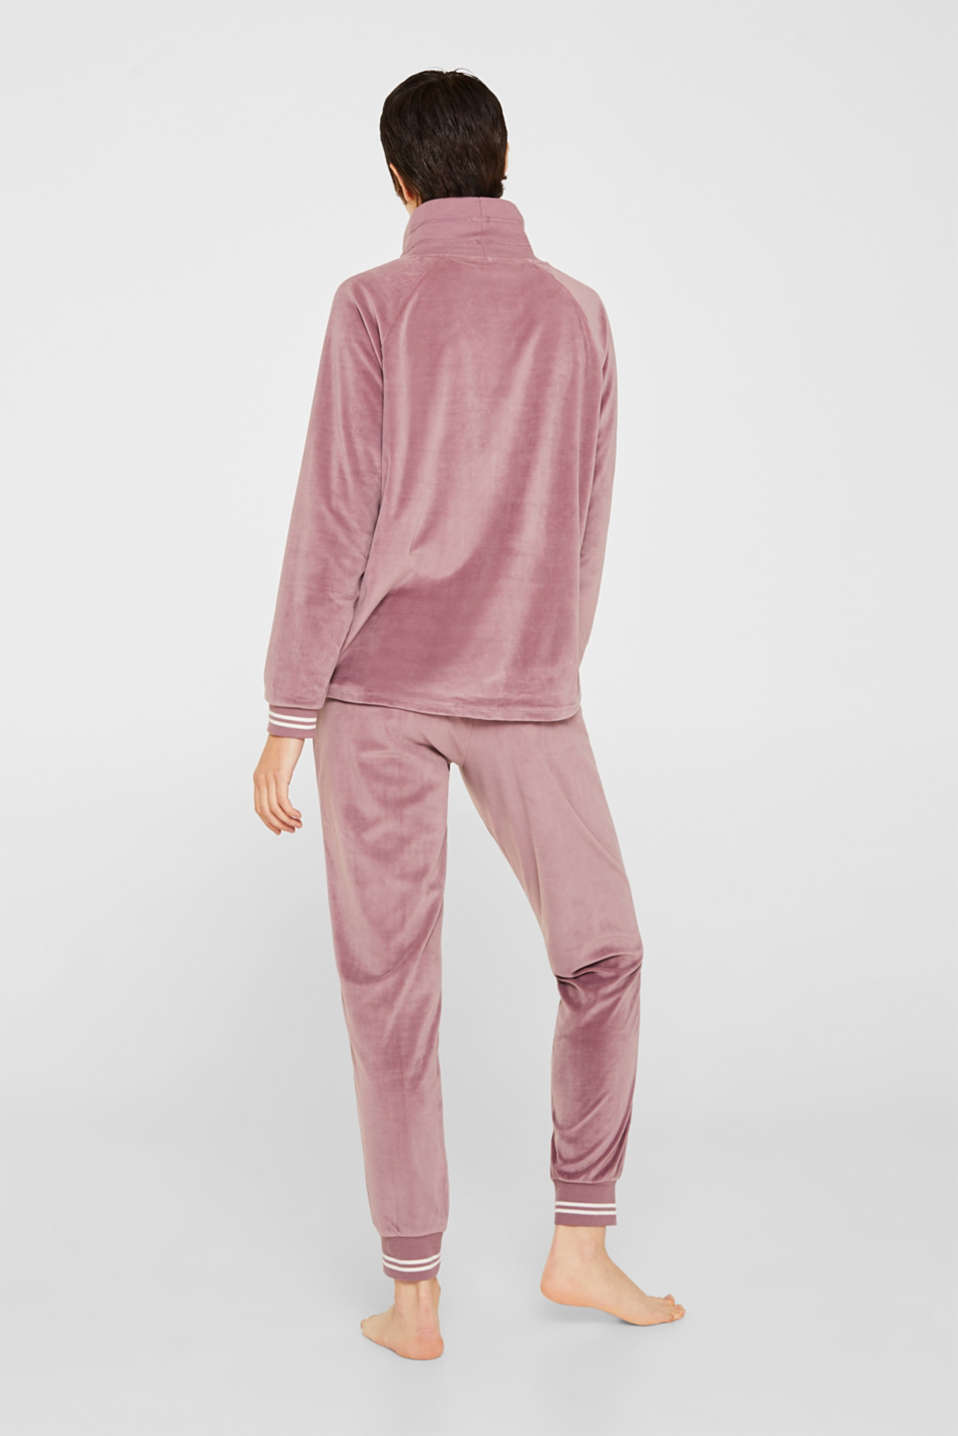 Velour sweatshirt with ribbed cuffs and waistband, MAUVE, detail image number 2